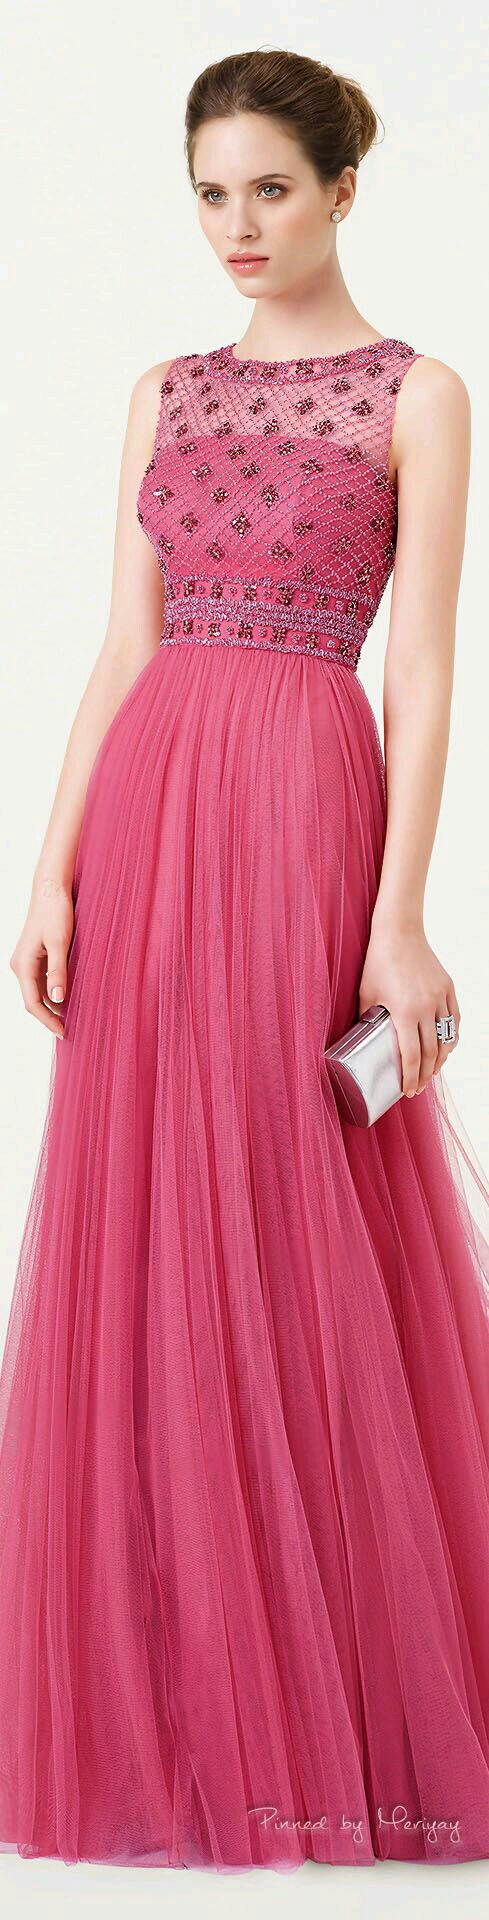 Pin by dark angel on pink everything pink pinterest